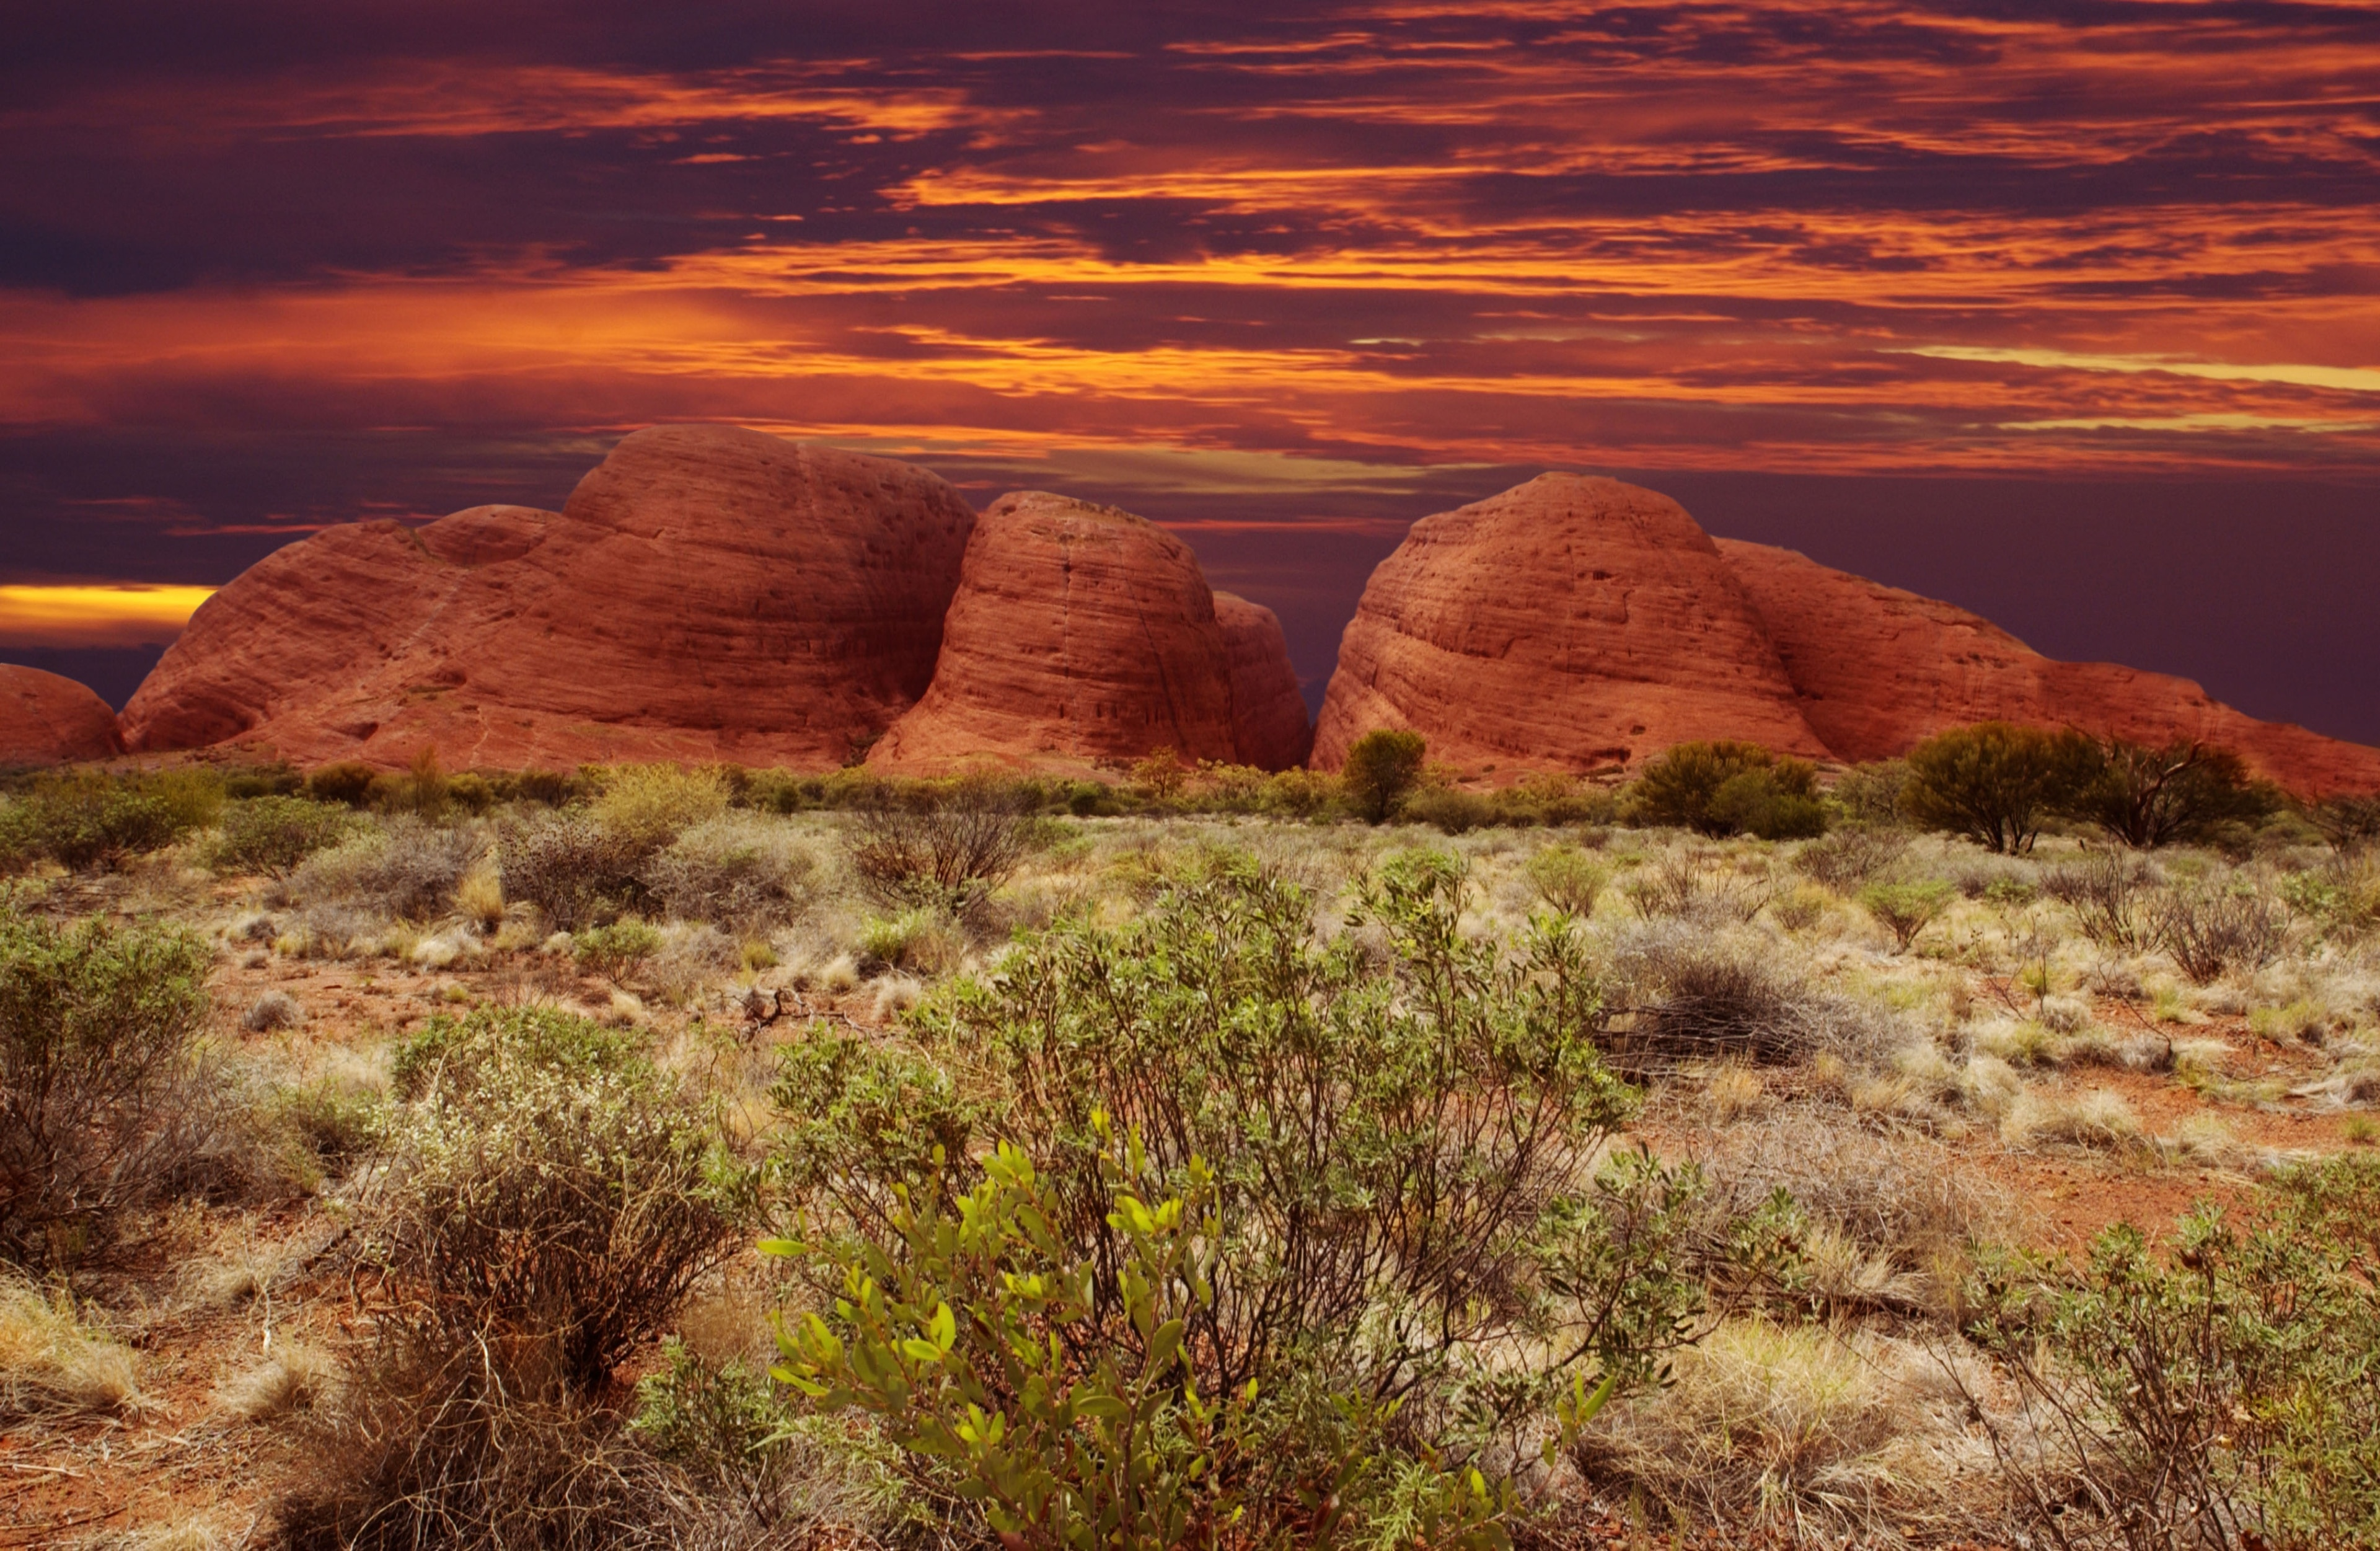 You can find out about the history of Petermann with a trip to Kata Tjuta (The Olgas). Discover the desert landscapes in this family-friendly area or enjoy its local tours.